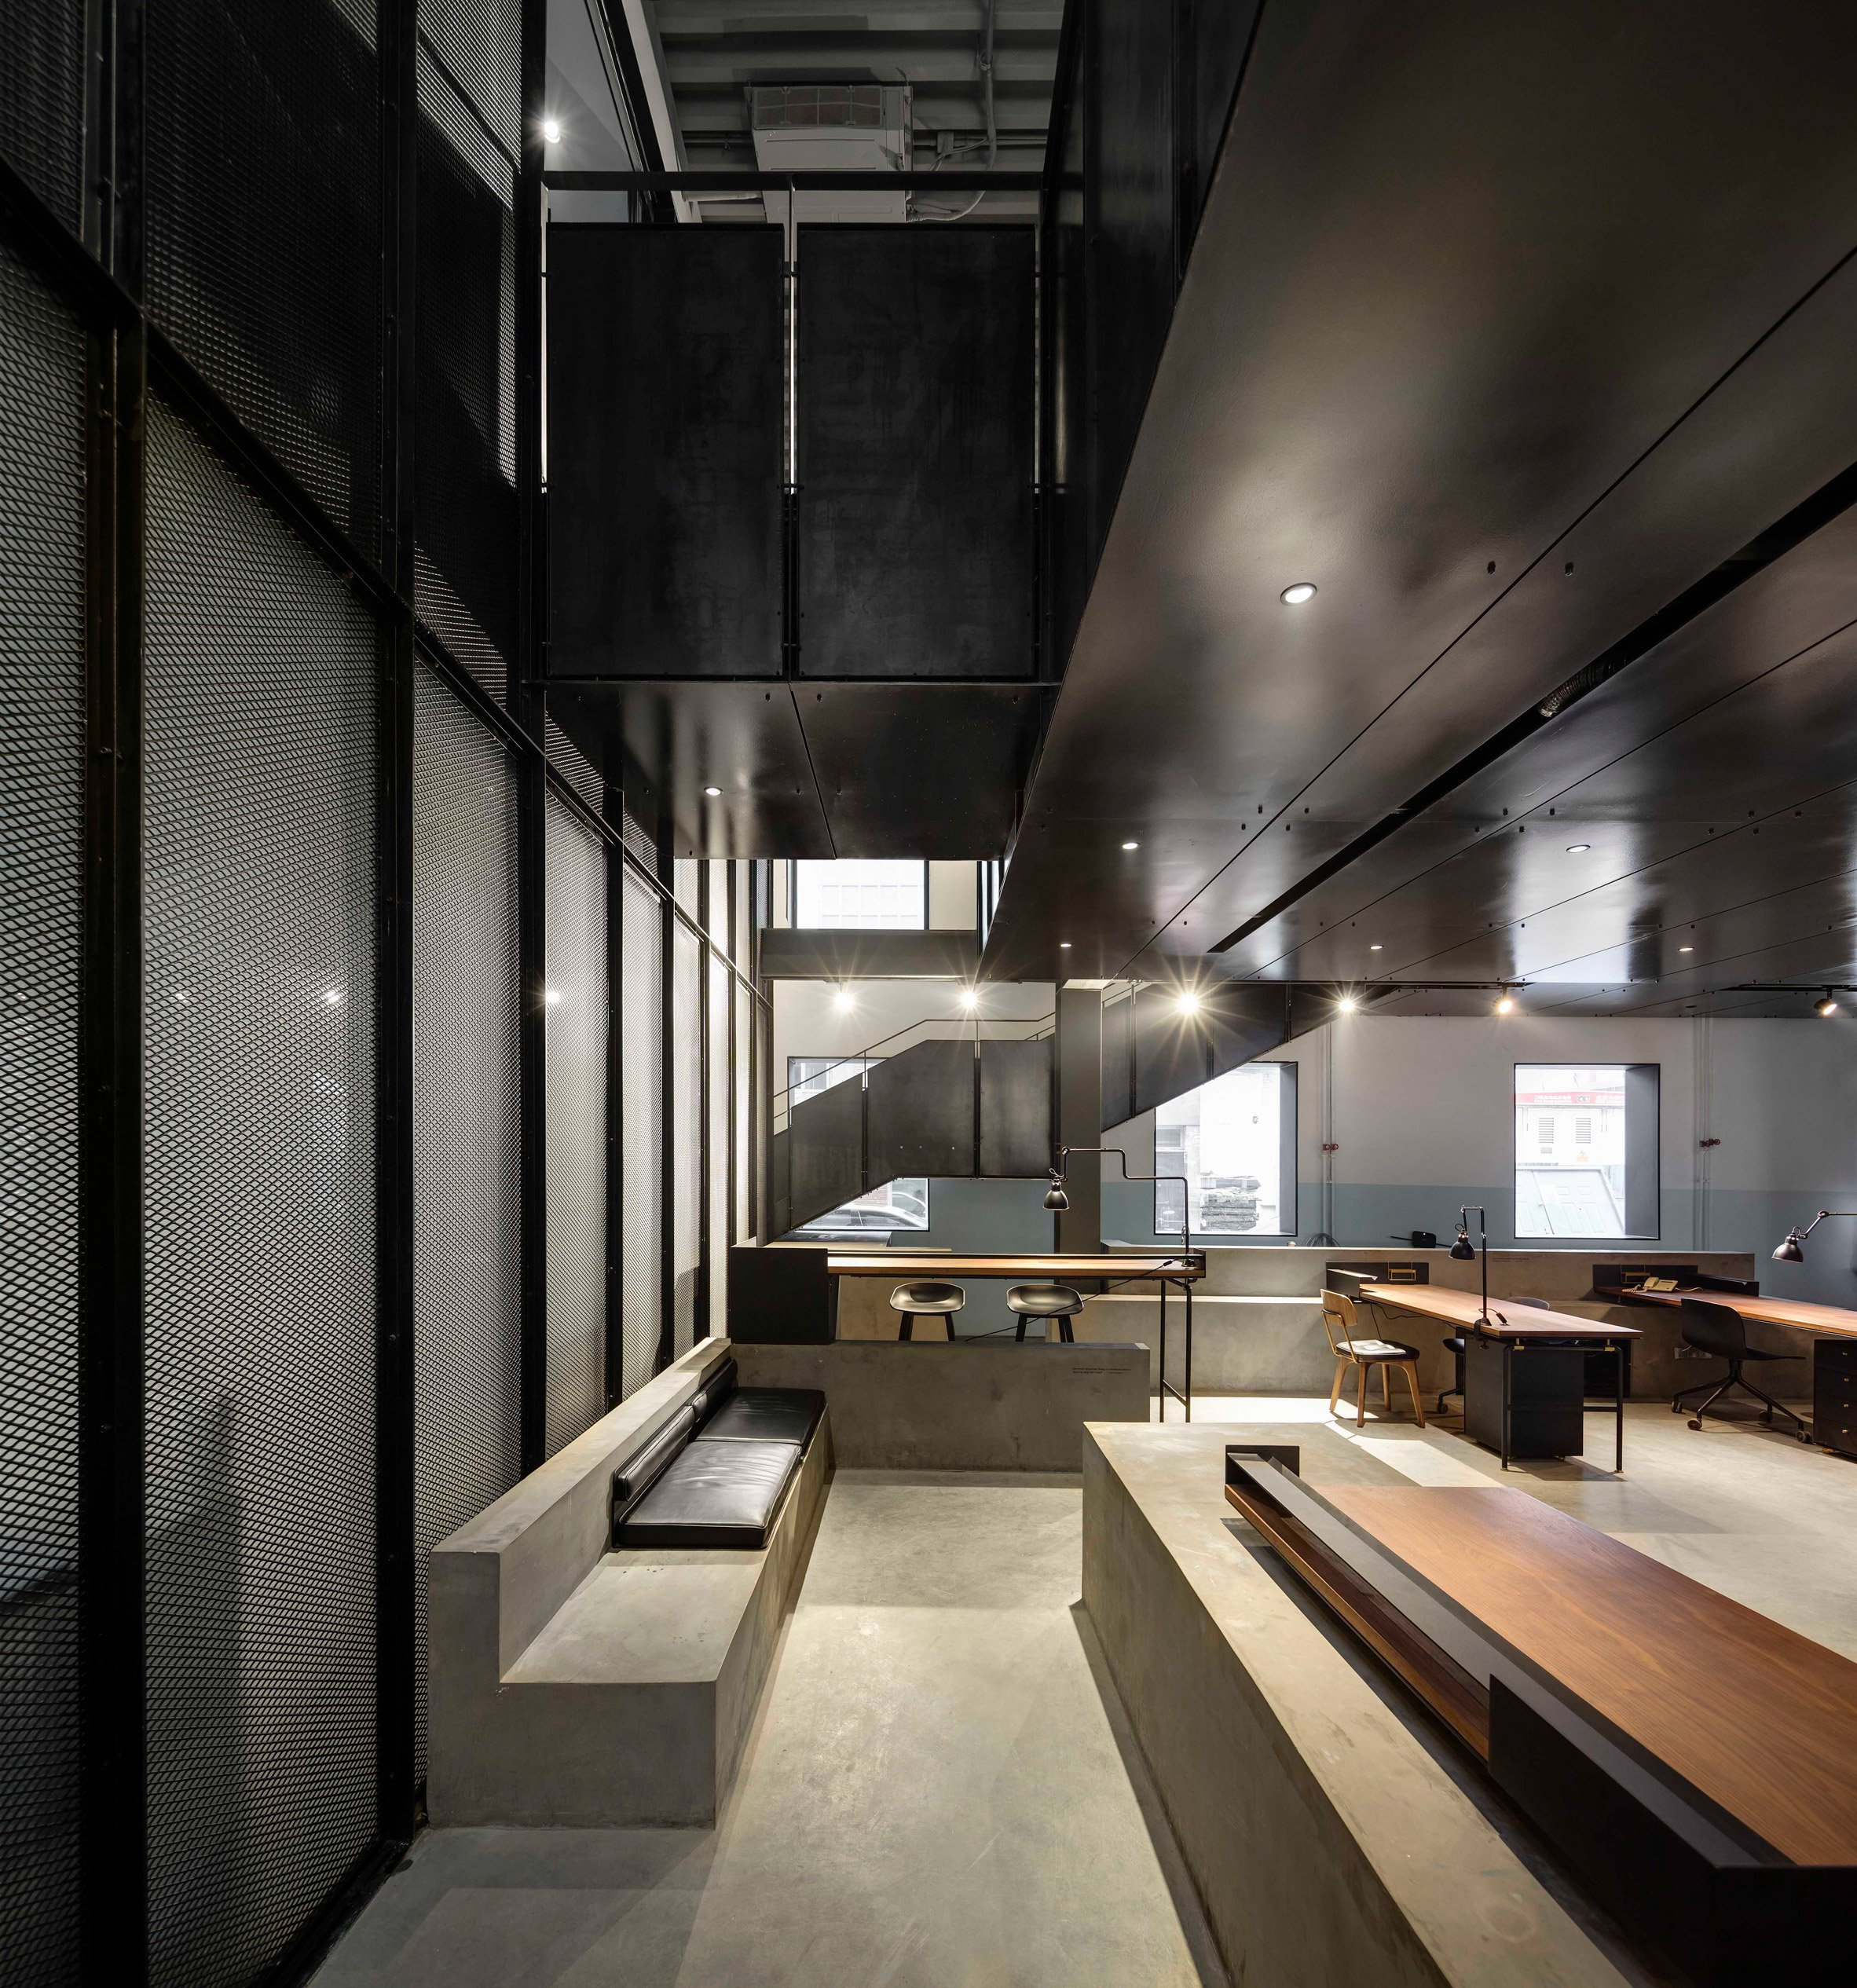 the-garage-neri-hu-beijing-cafe-industrial-car-workshop-cafe_dezeen_2364_col_3